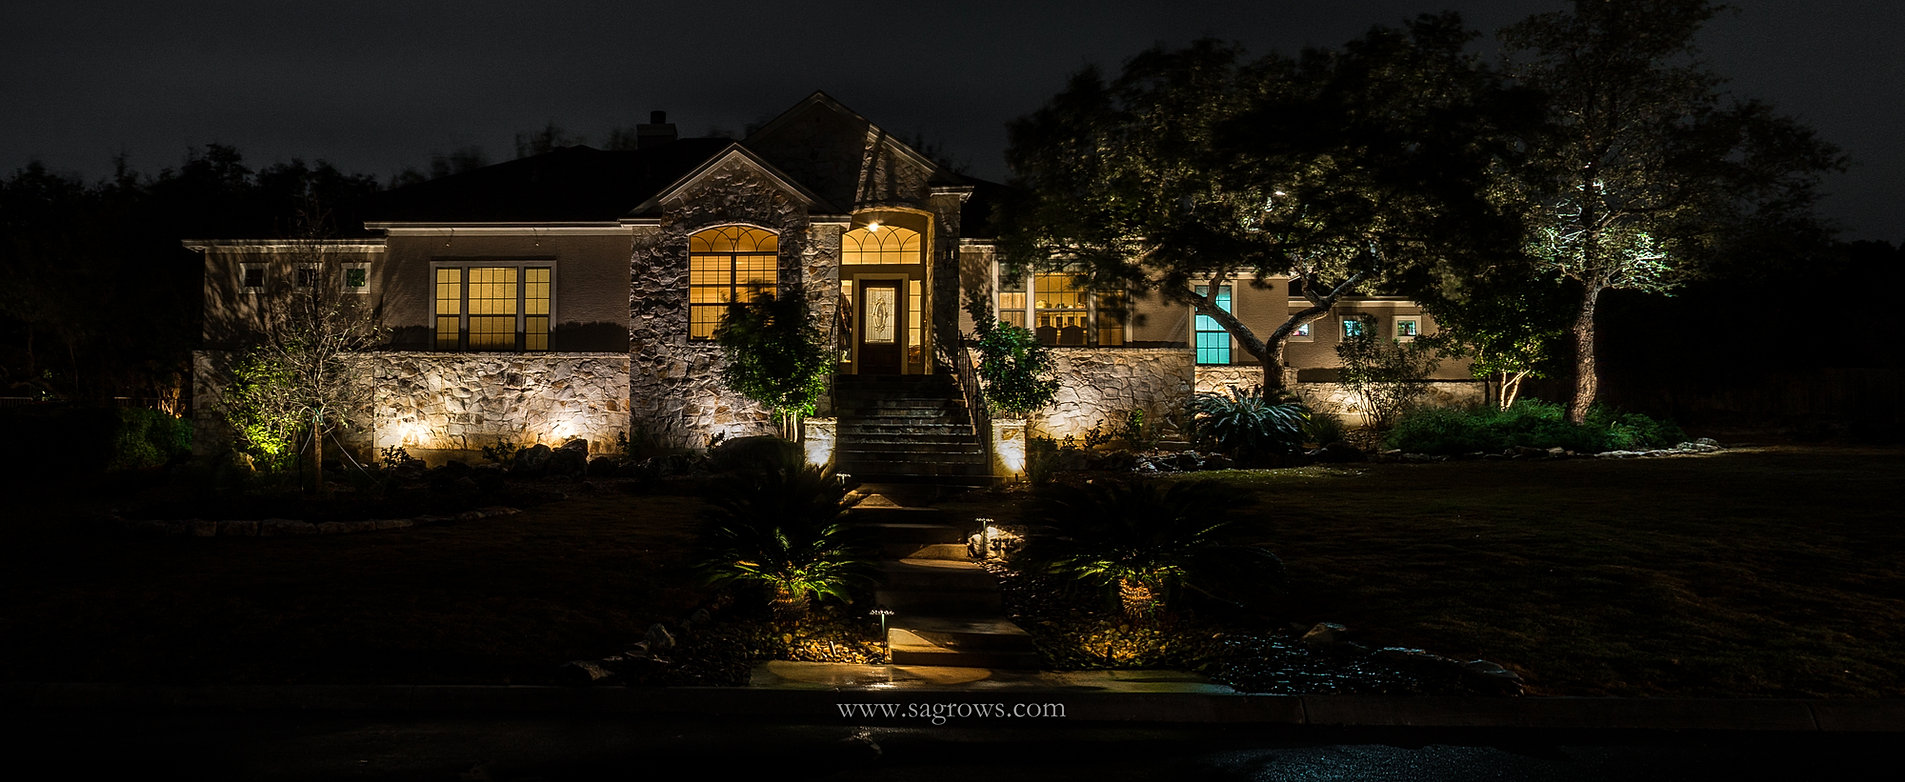 S A Grows Landscape Services San Antonio Tx Residential